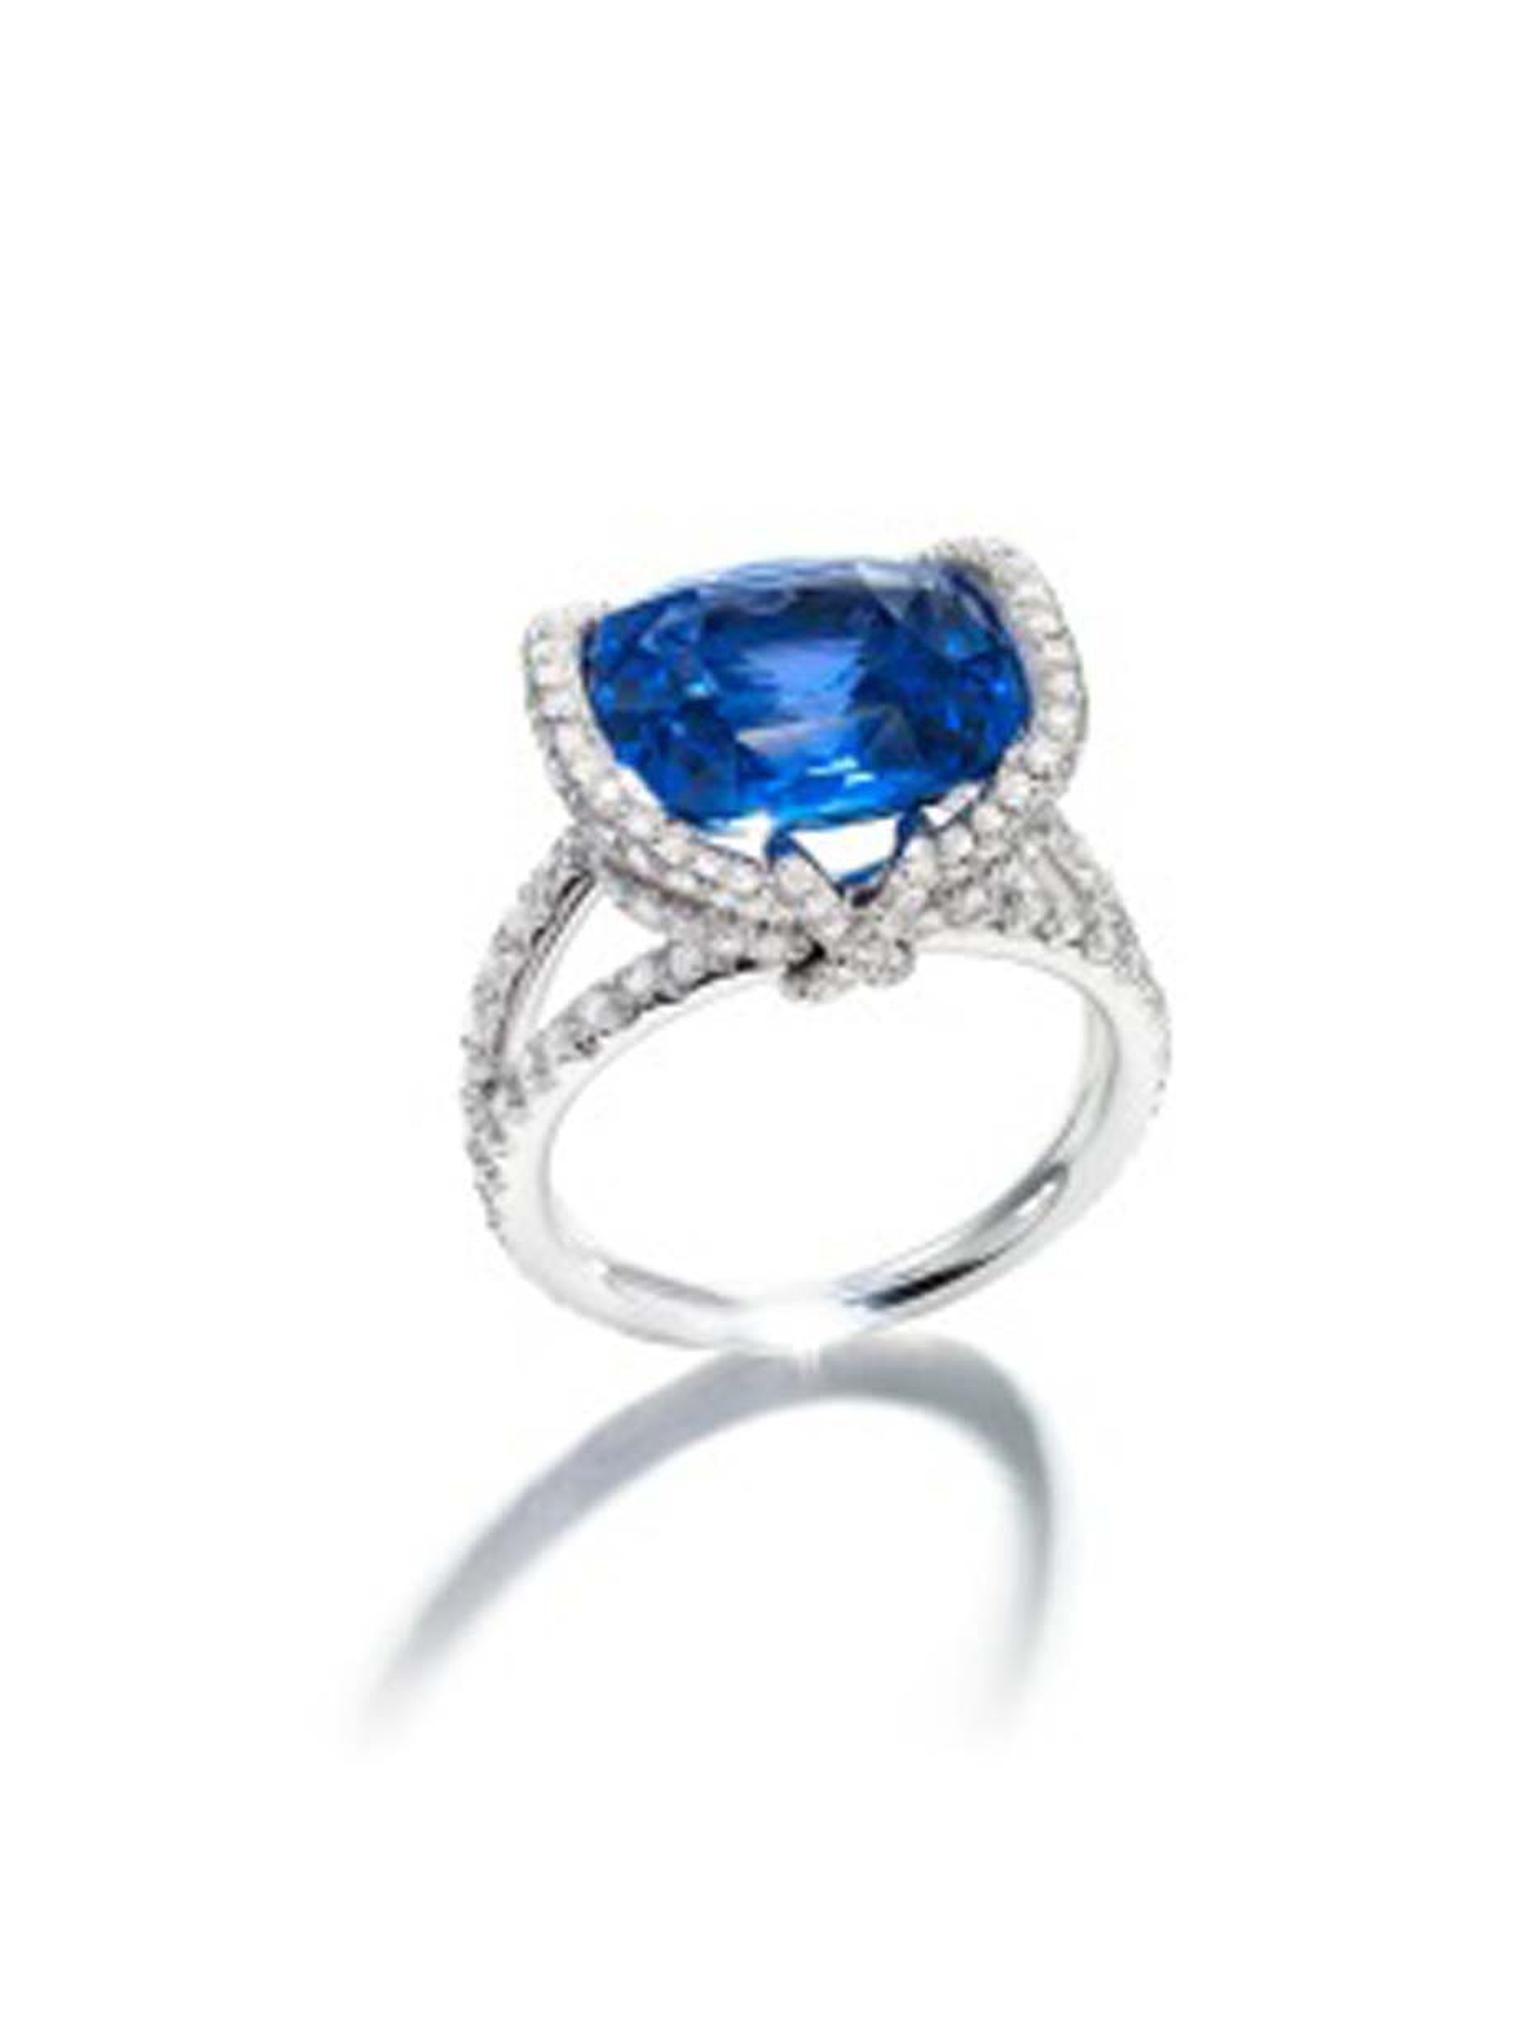 Chaumet Liens ring with a centre sapphire surrounded by diamonds.